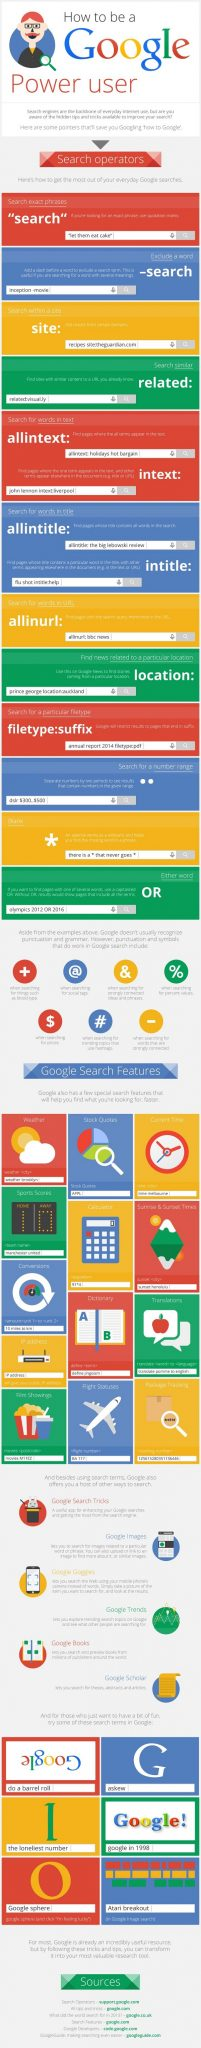 Infographie Google power user